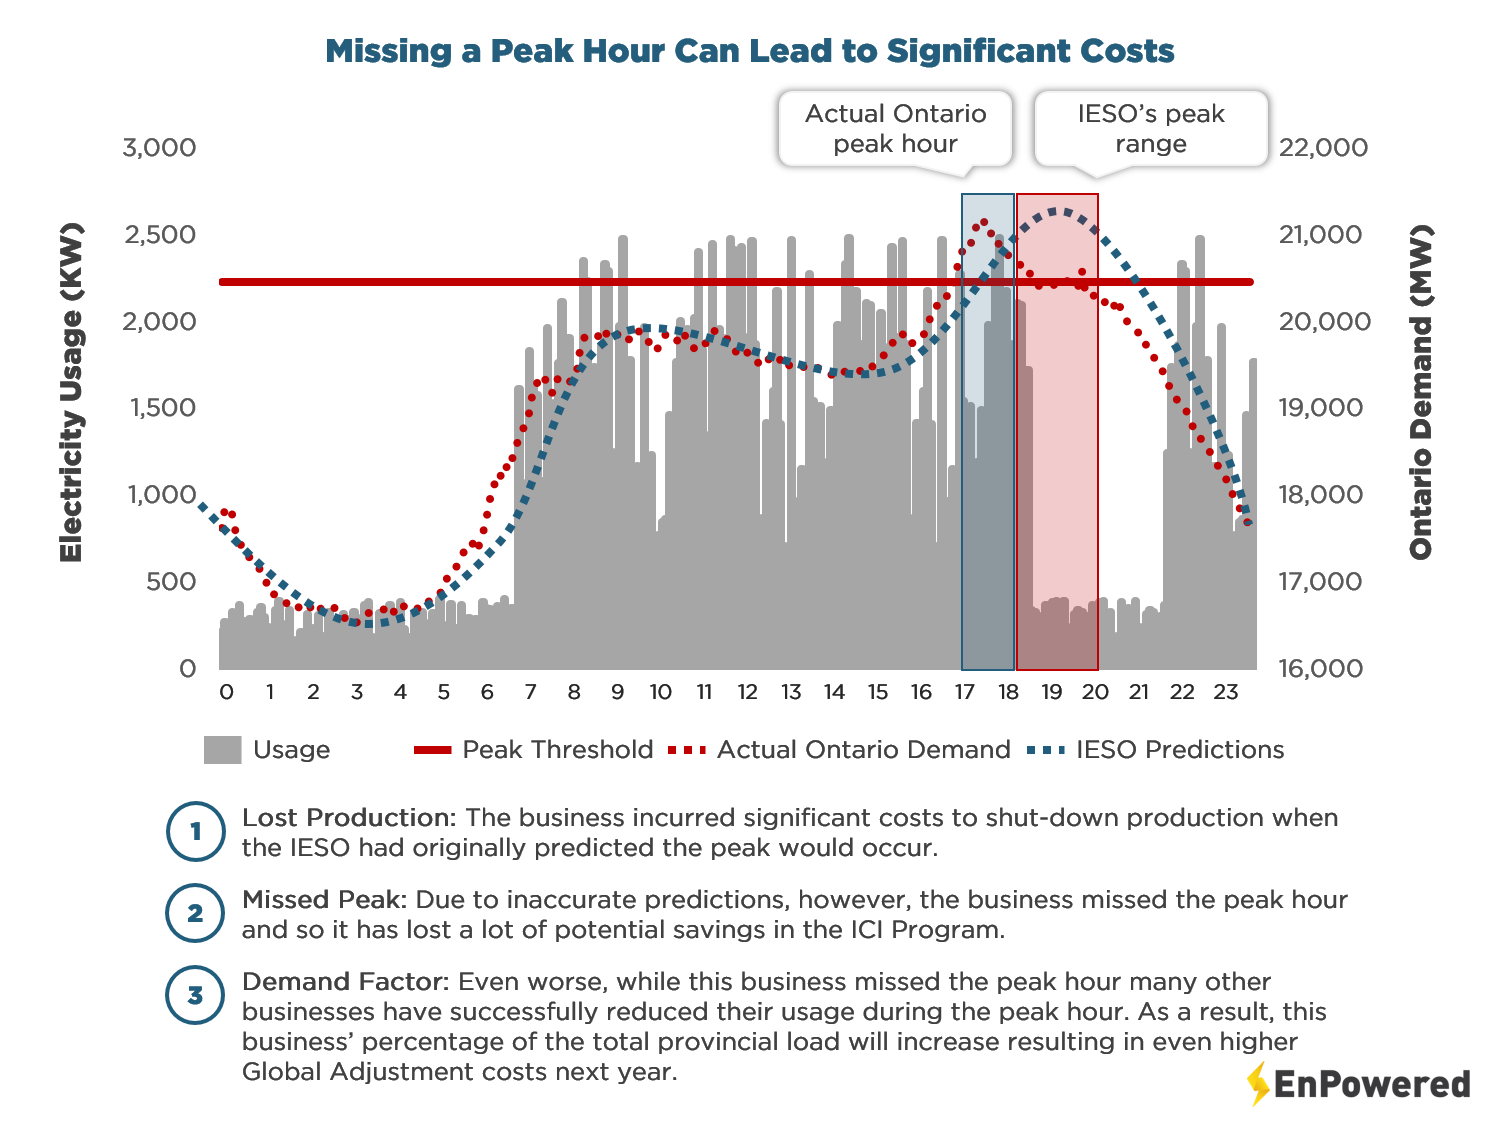 graph of Ontario electricity usage over 24 hour period with actual peak hour and IESO predicted peak hour